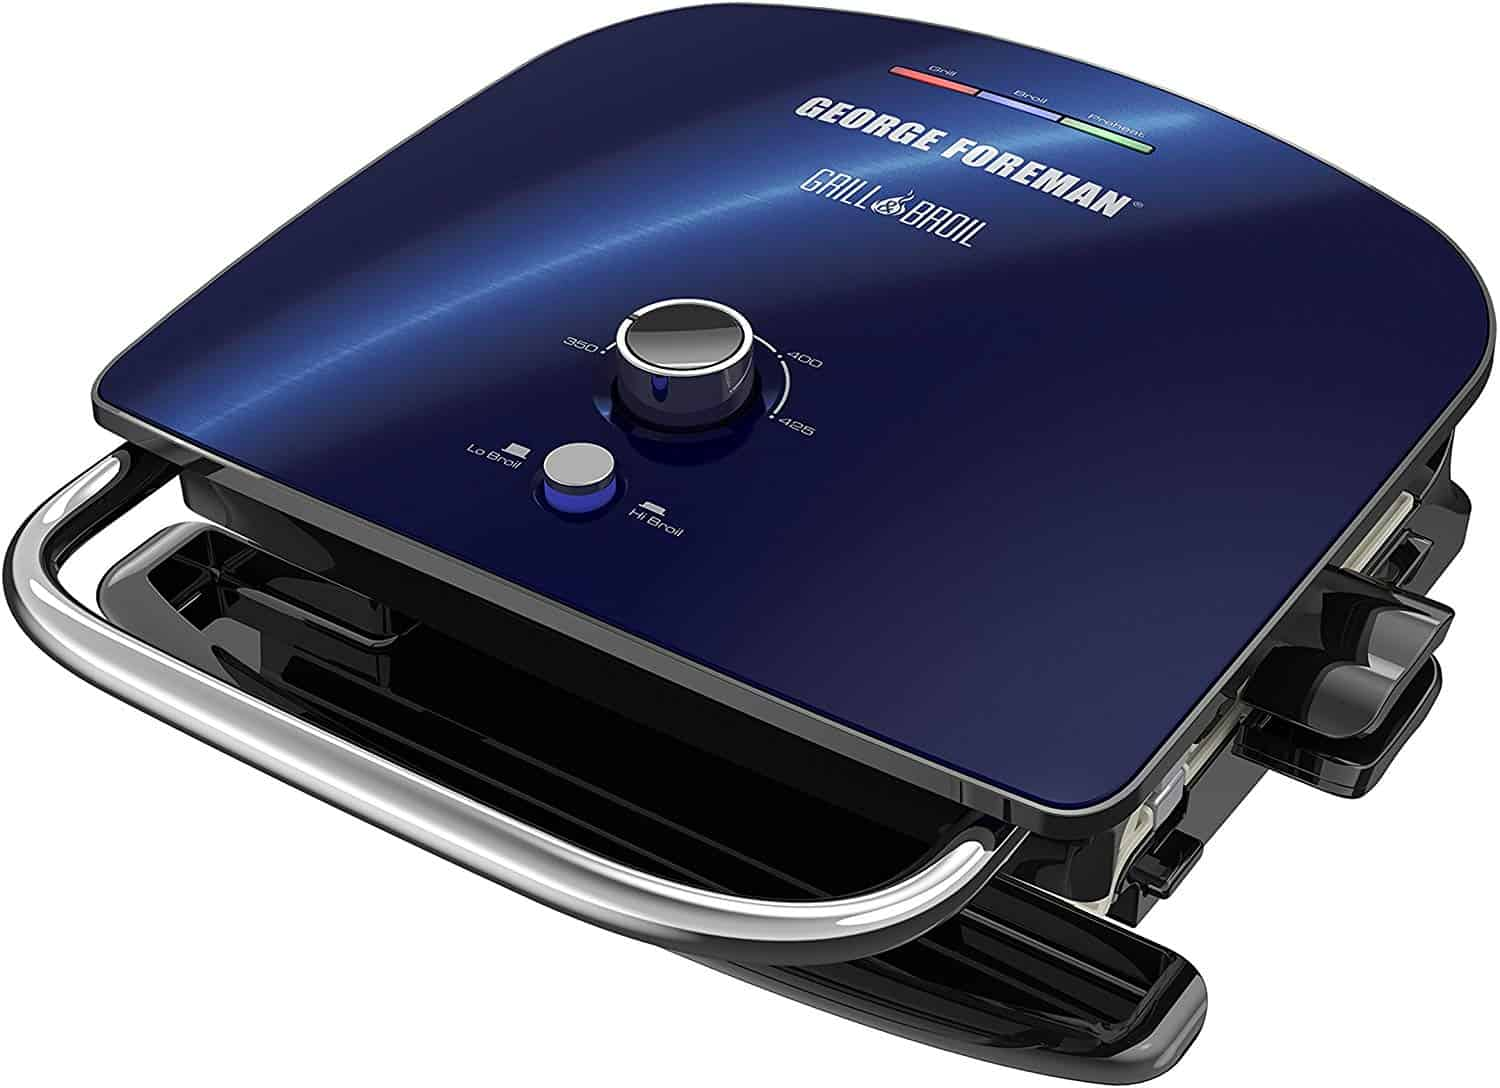 George foreman gbr5750scbq grill & broil 7 in 1 electric indoor gril